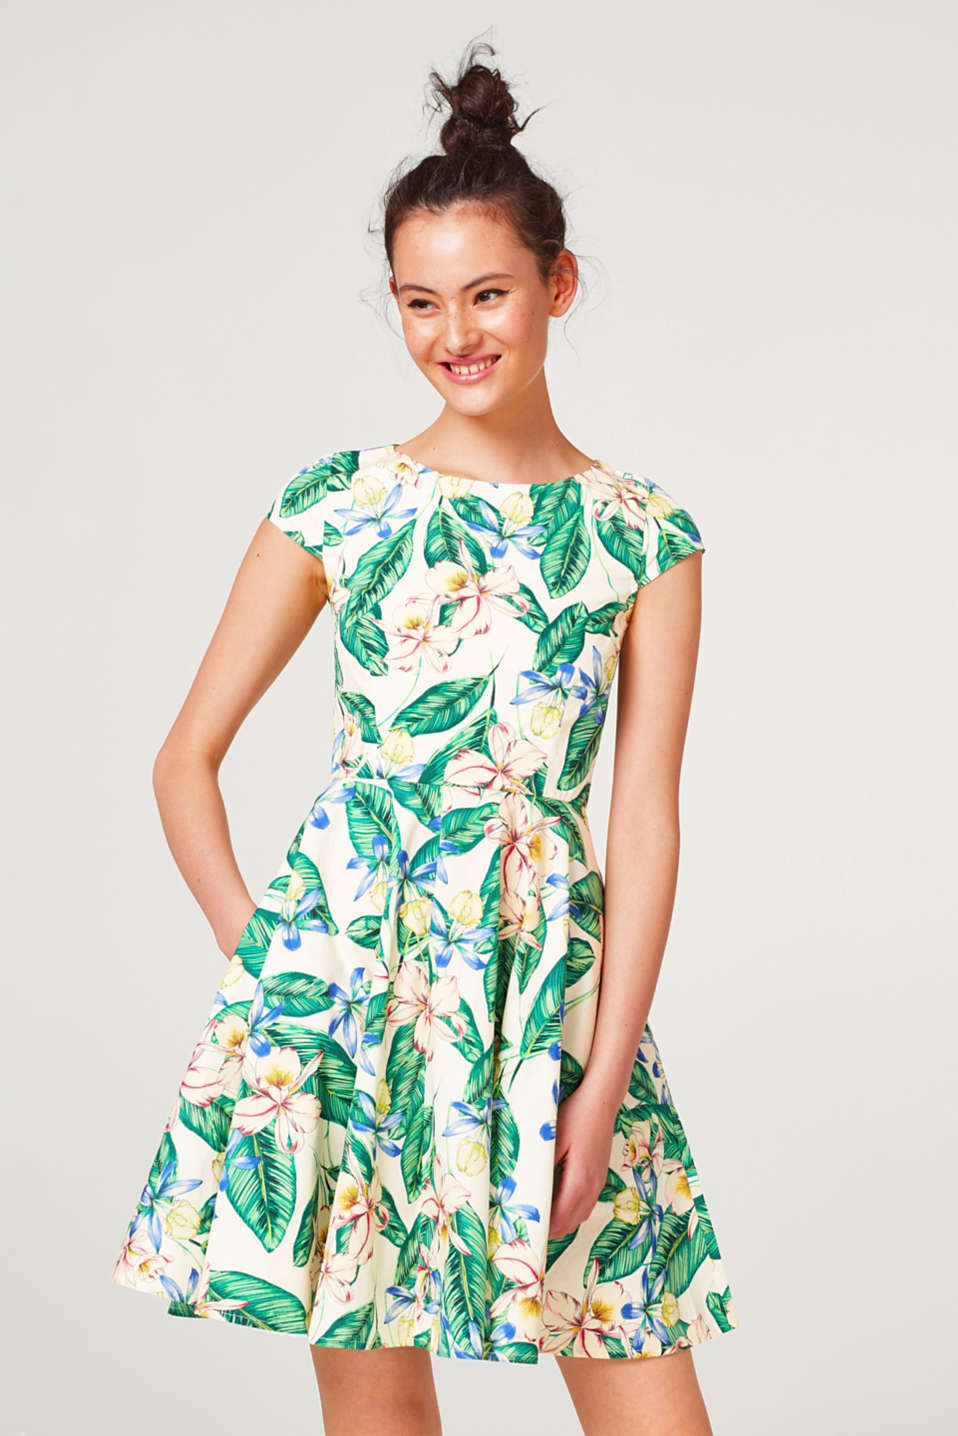 edc - Swinging dress with a floral print, made of cotton